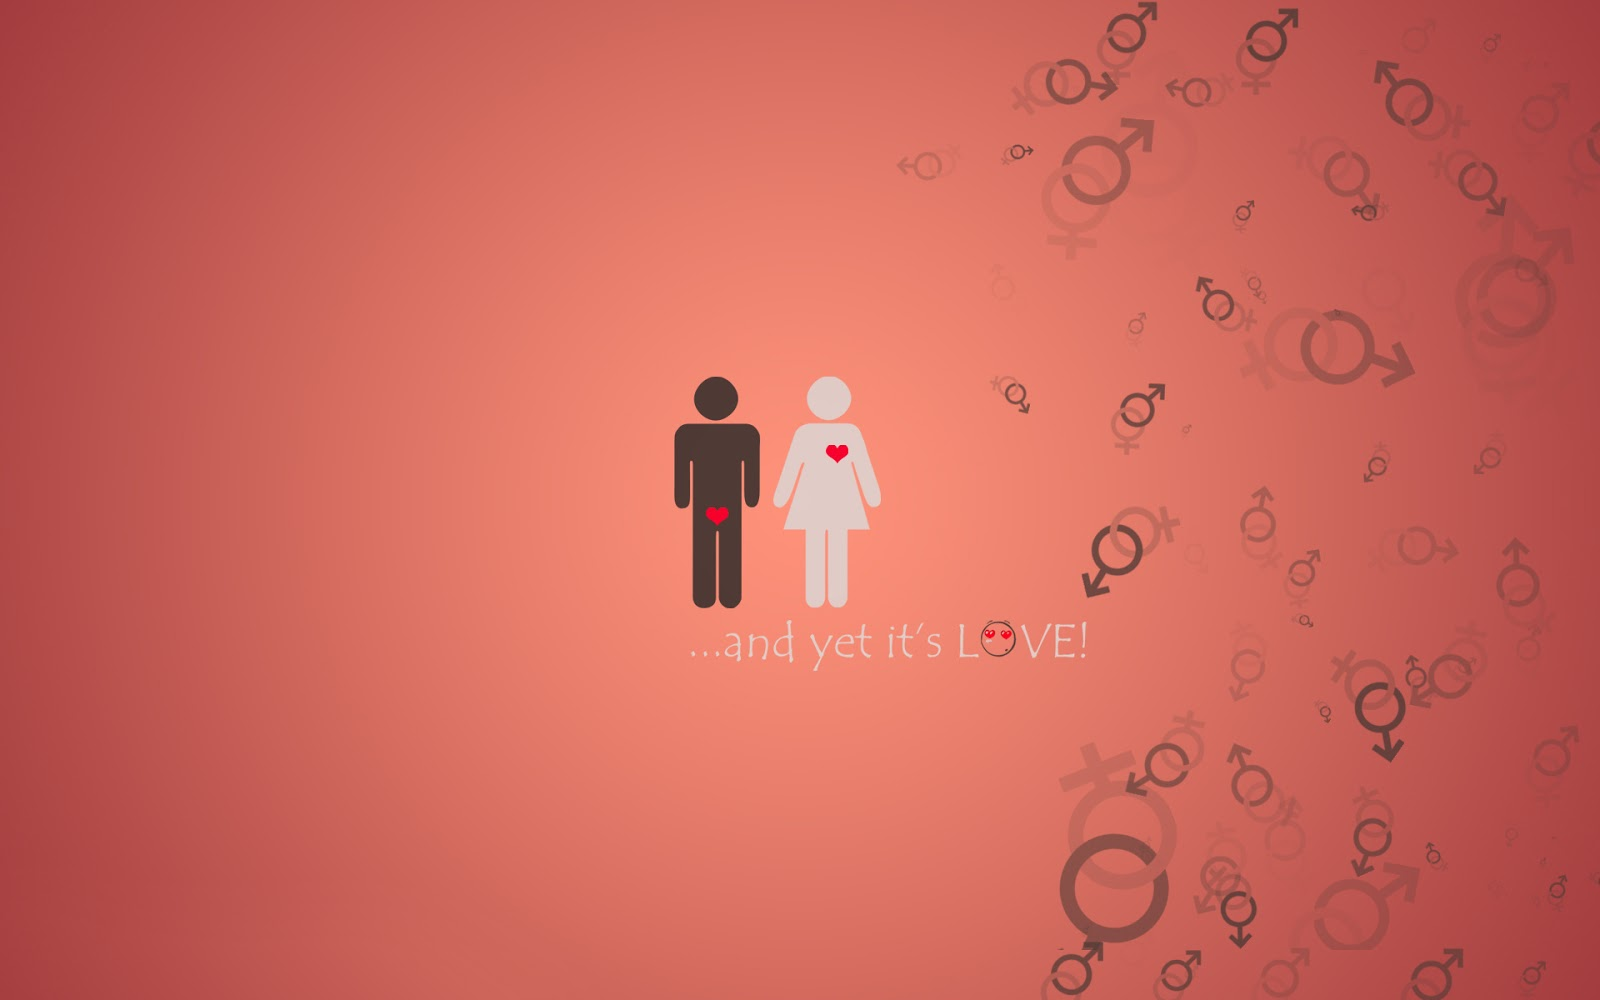 Download 100 Love Background Full Hd Images Viral Content Spot